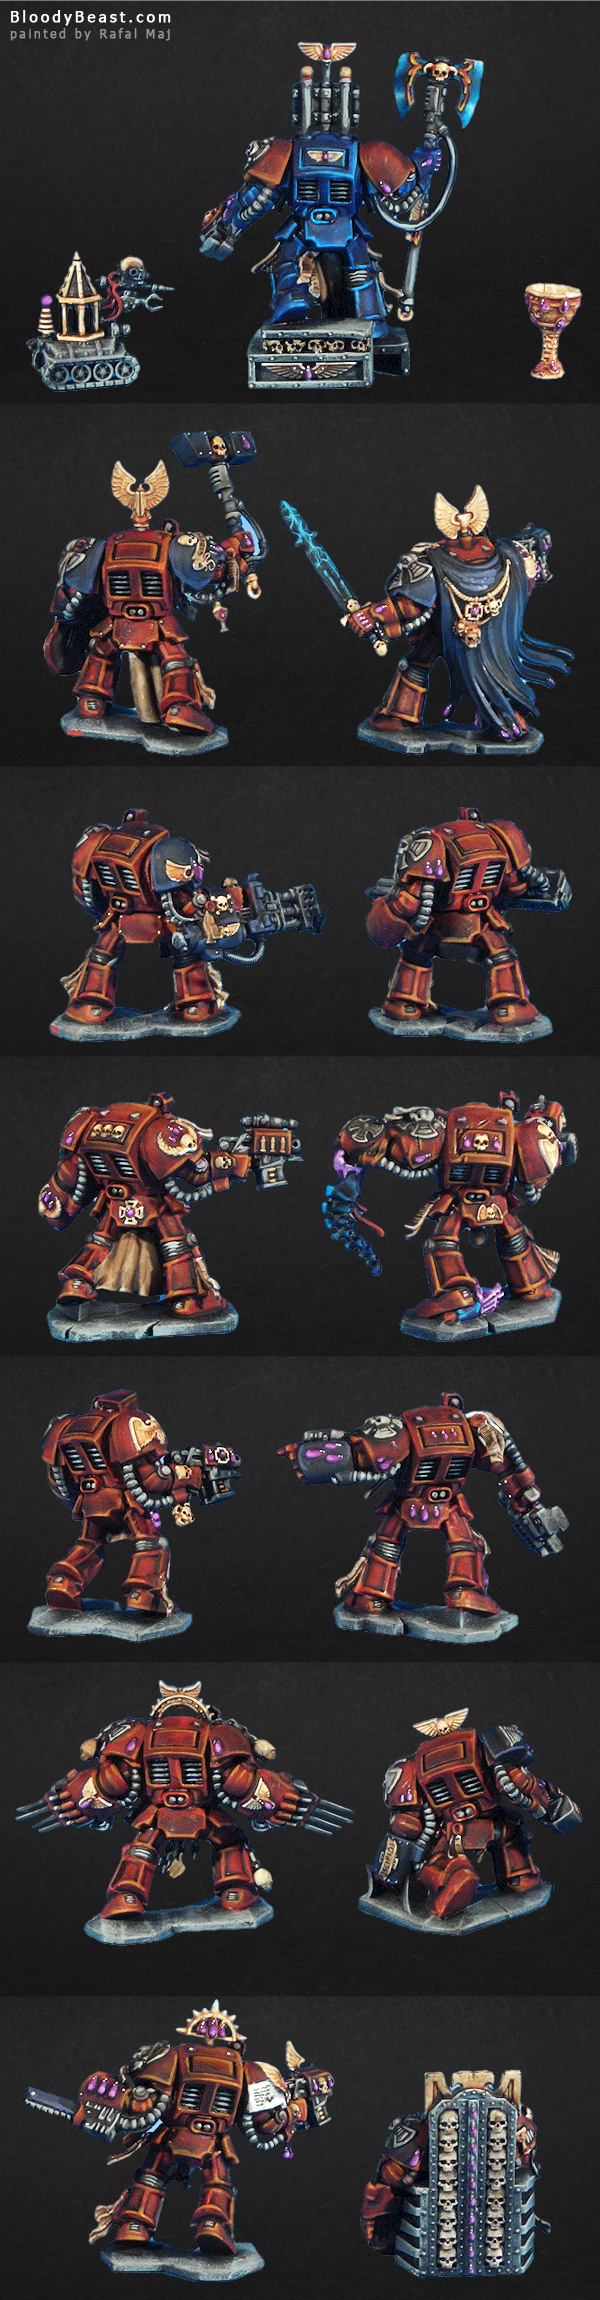 Another Space Hulk 3rd Edition Terminators painted by Rafal Maj (BloodyBeast.com)